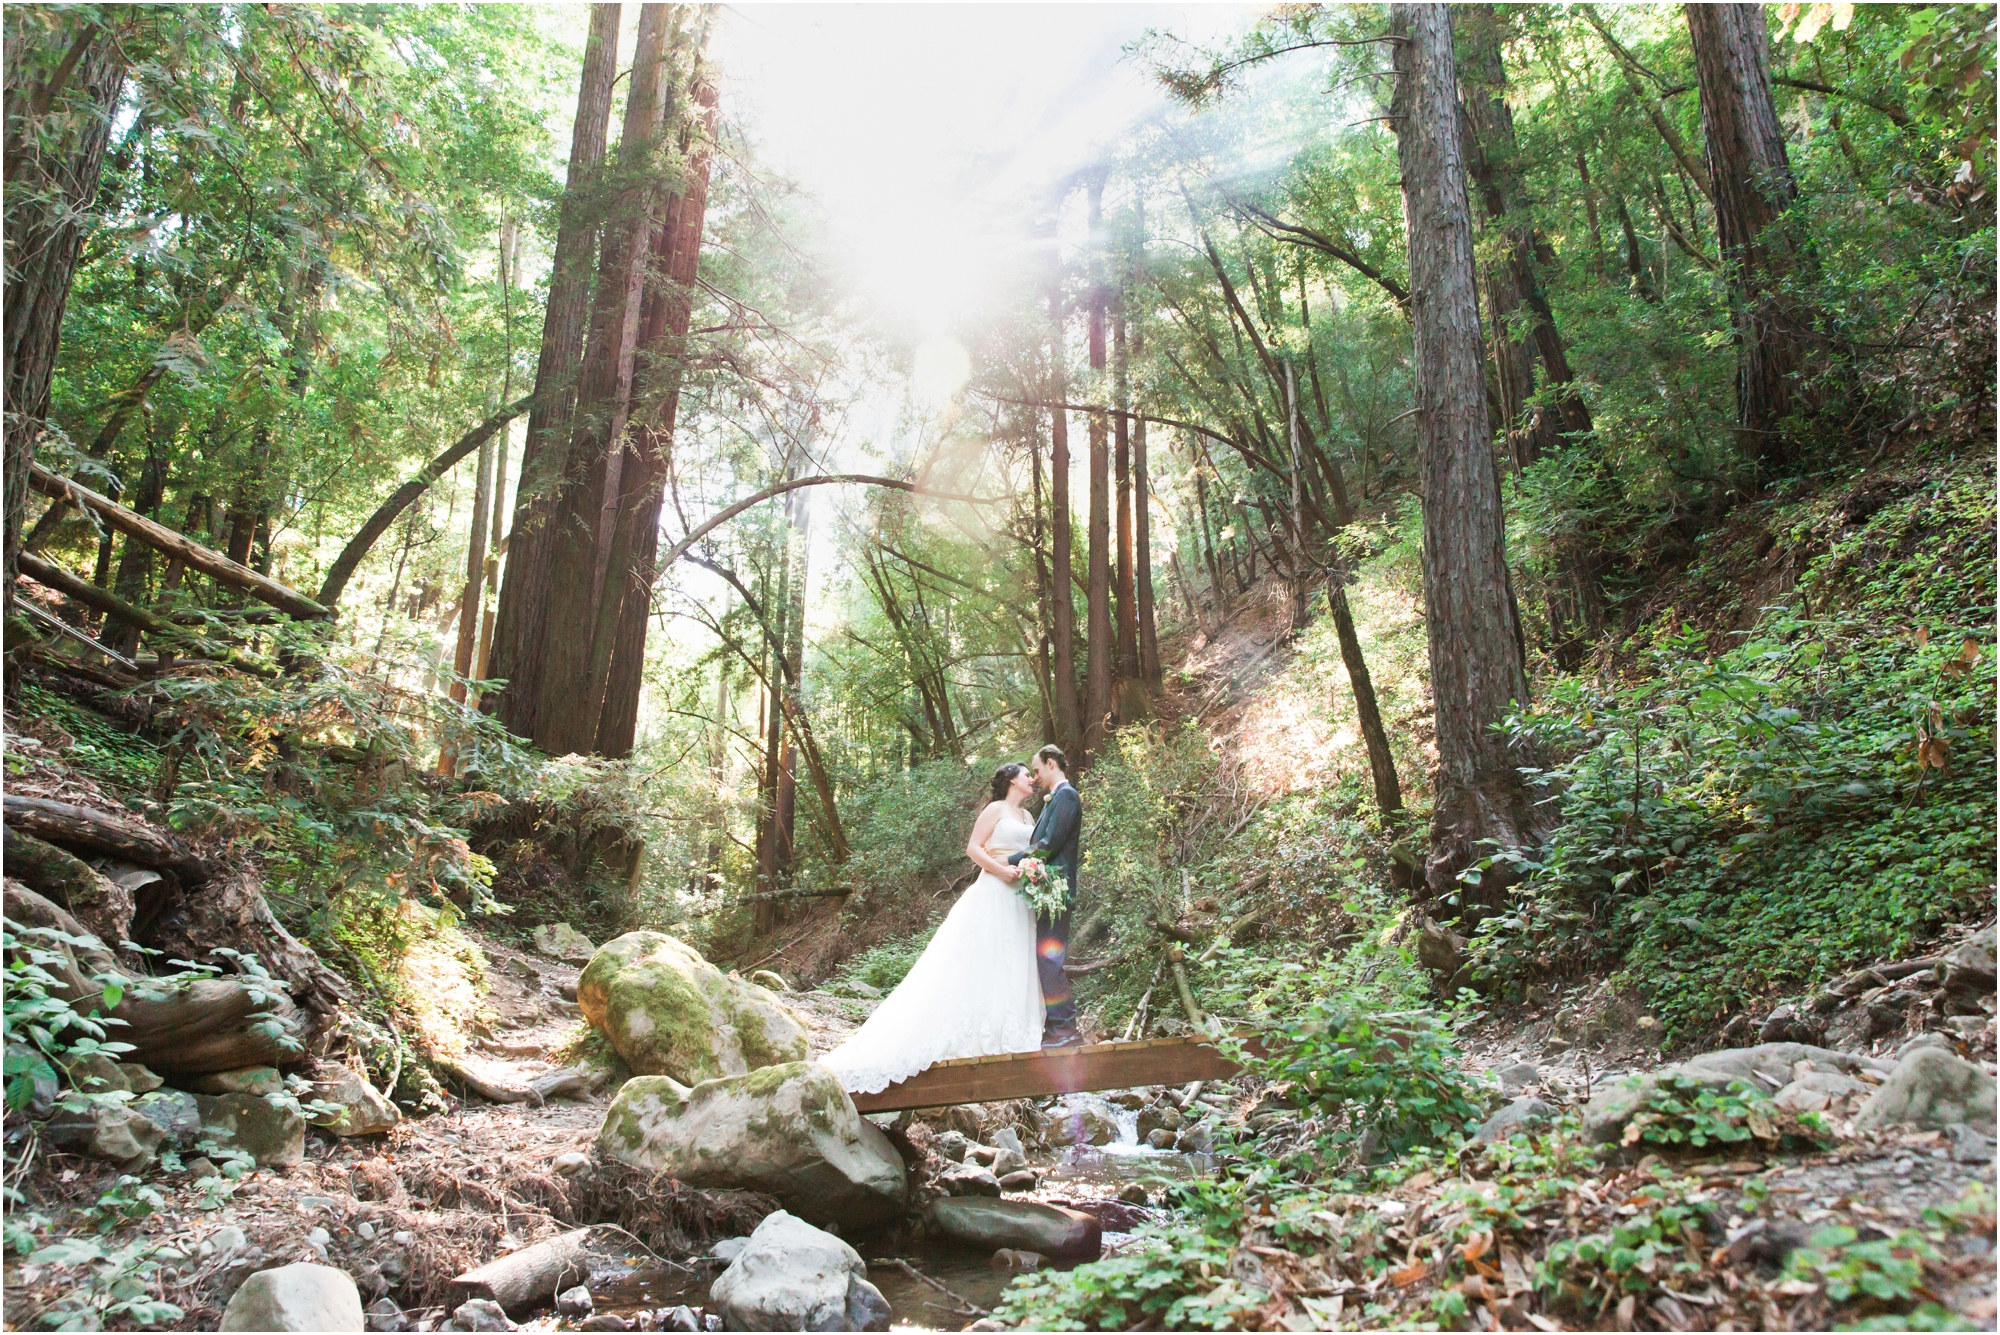 Saratoga Springs wedding pictures by Briana Calderon Photography_1854.jpg